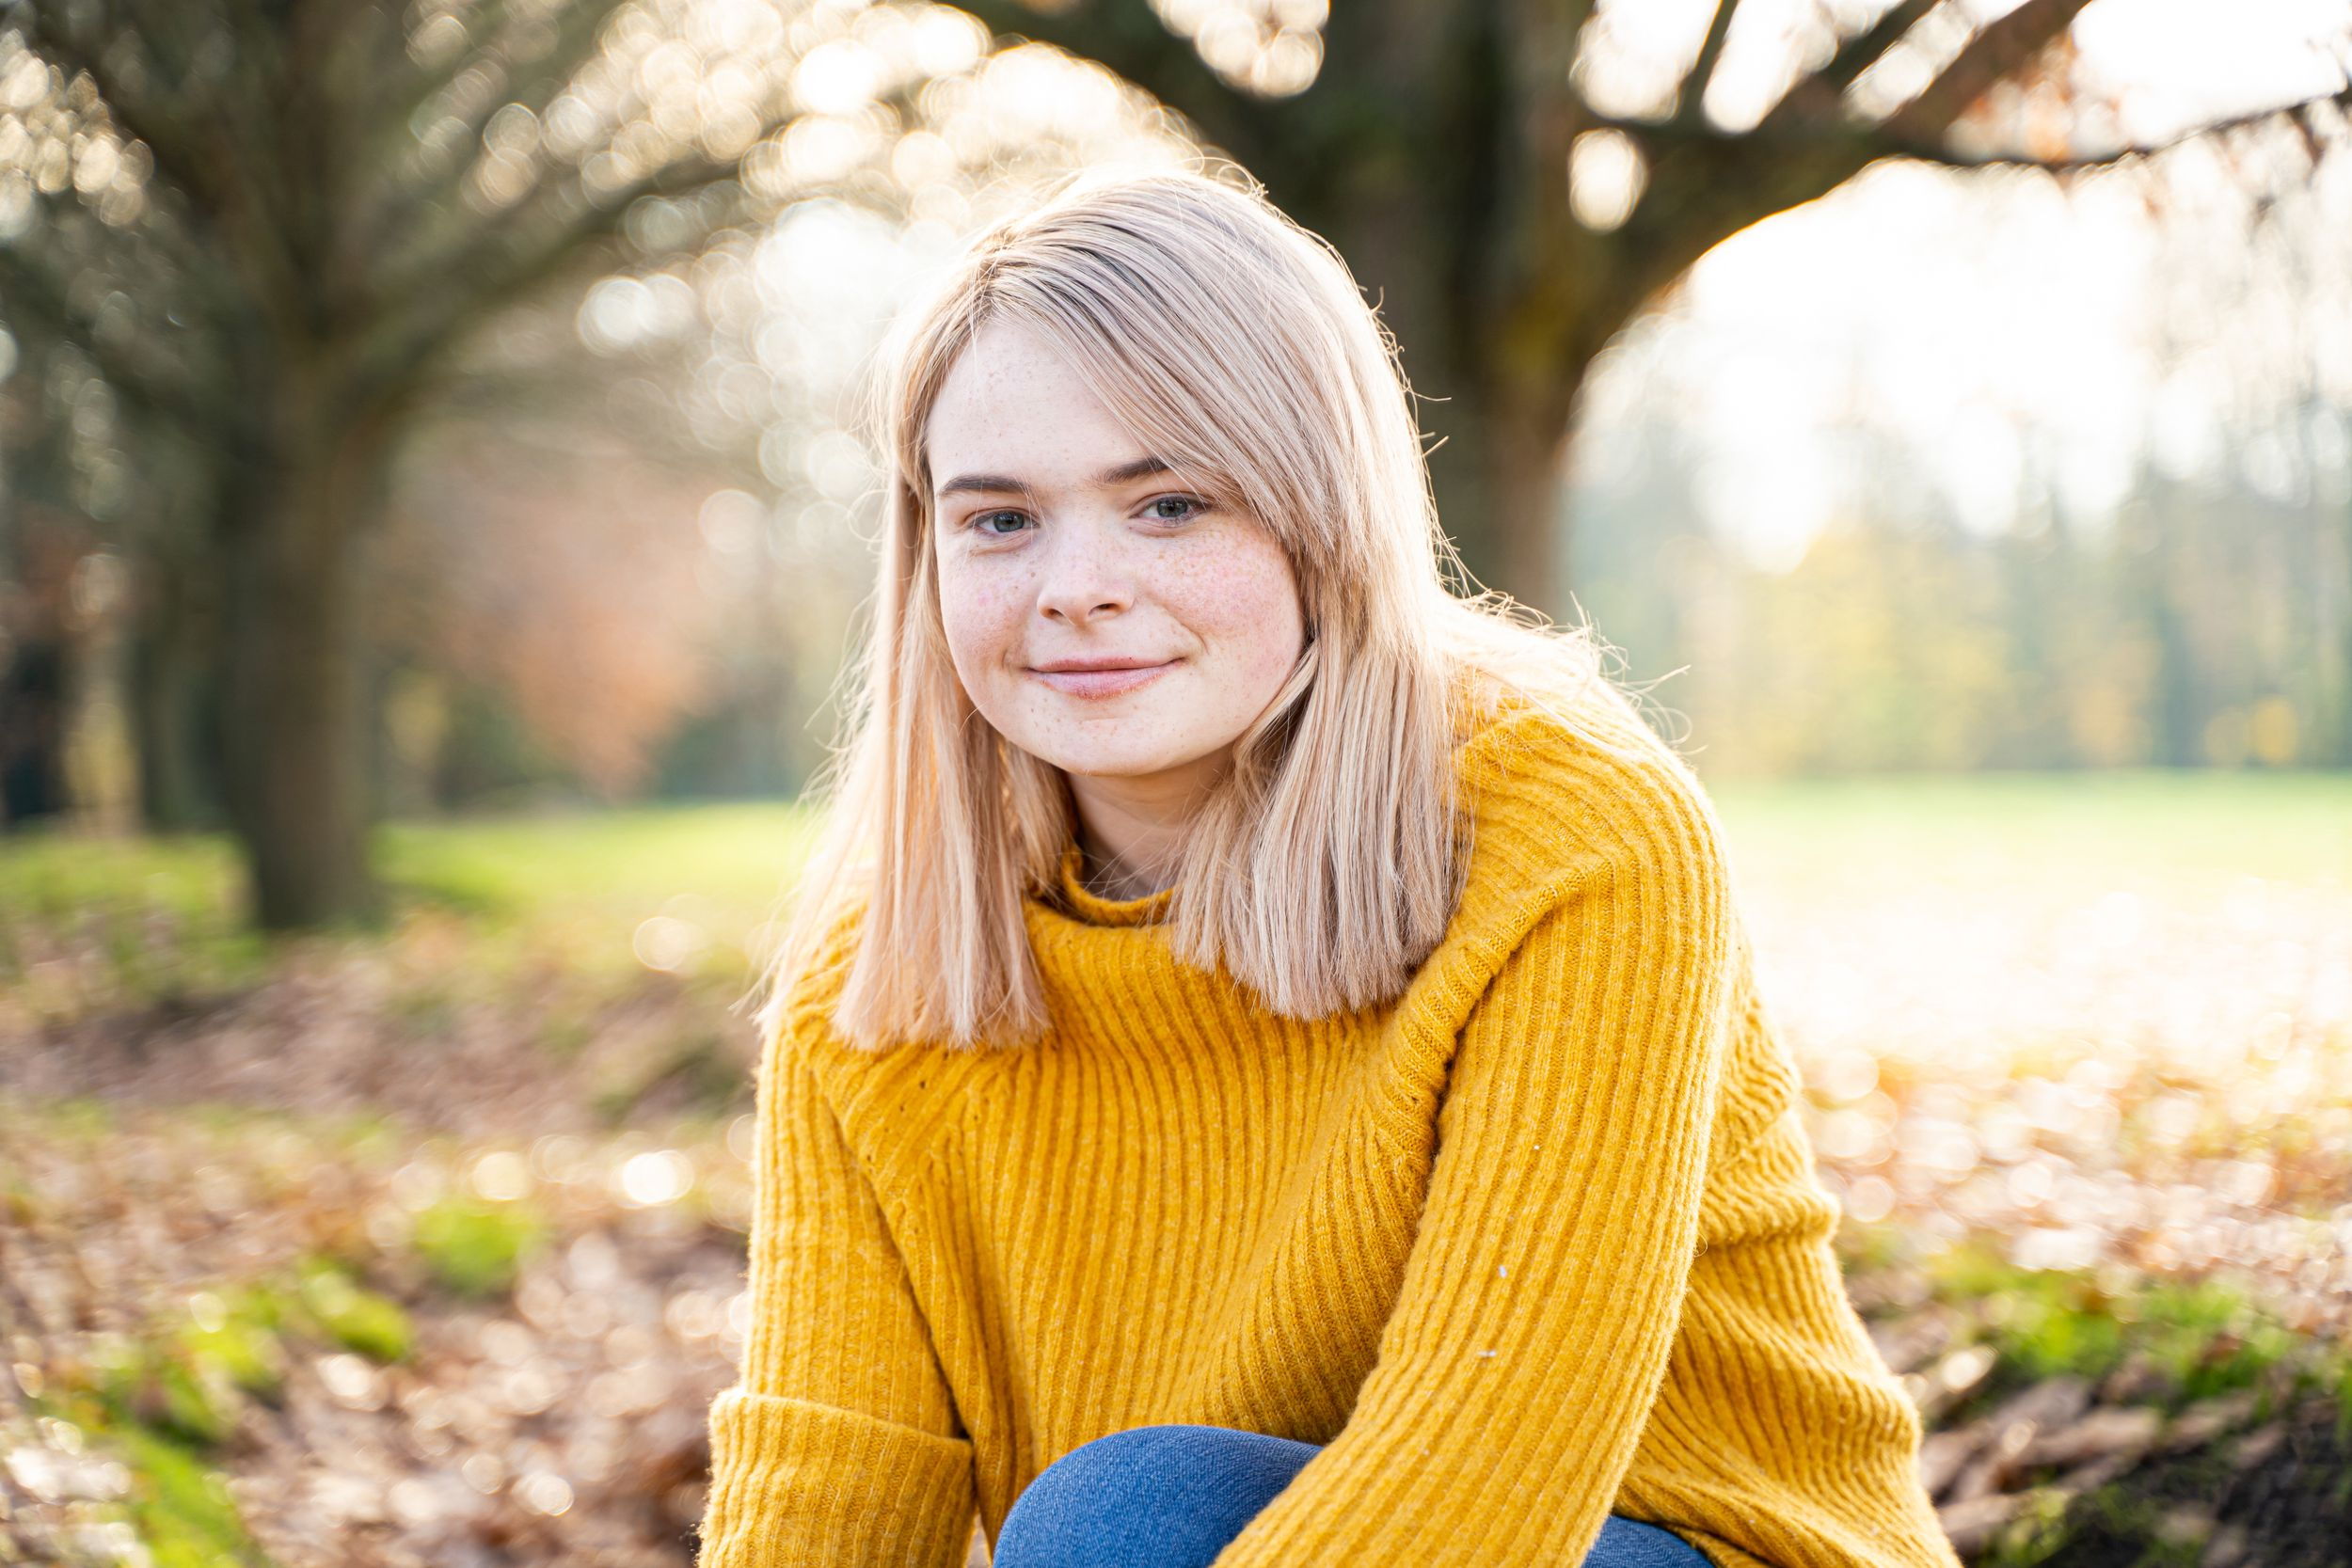 Portrait Photography Oxfordshire Autumn Golden Hour Oxford Photographer